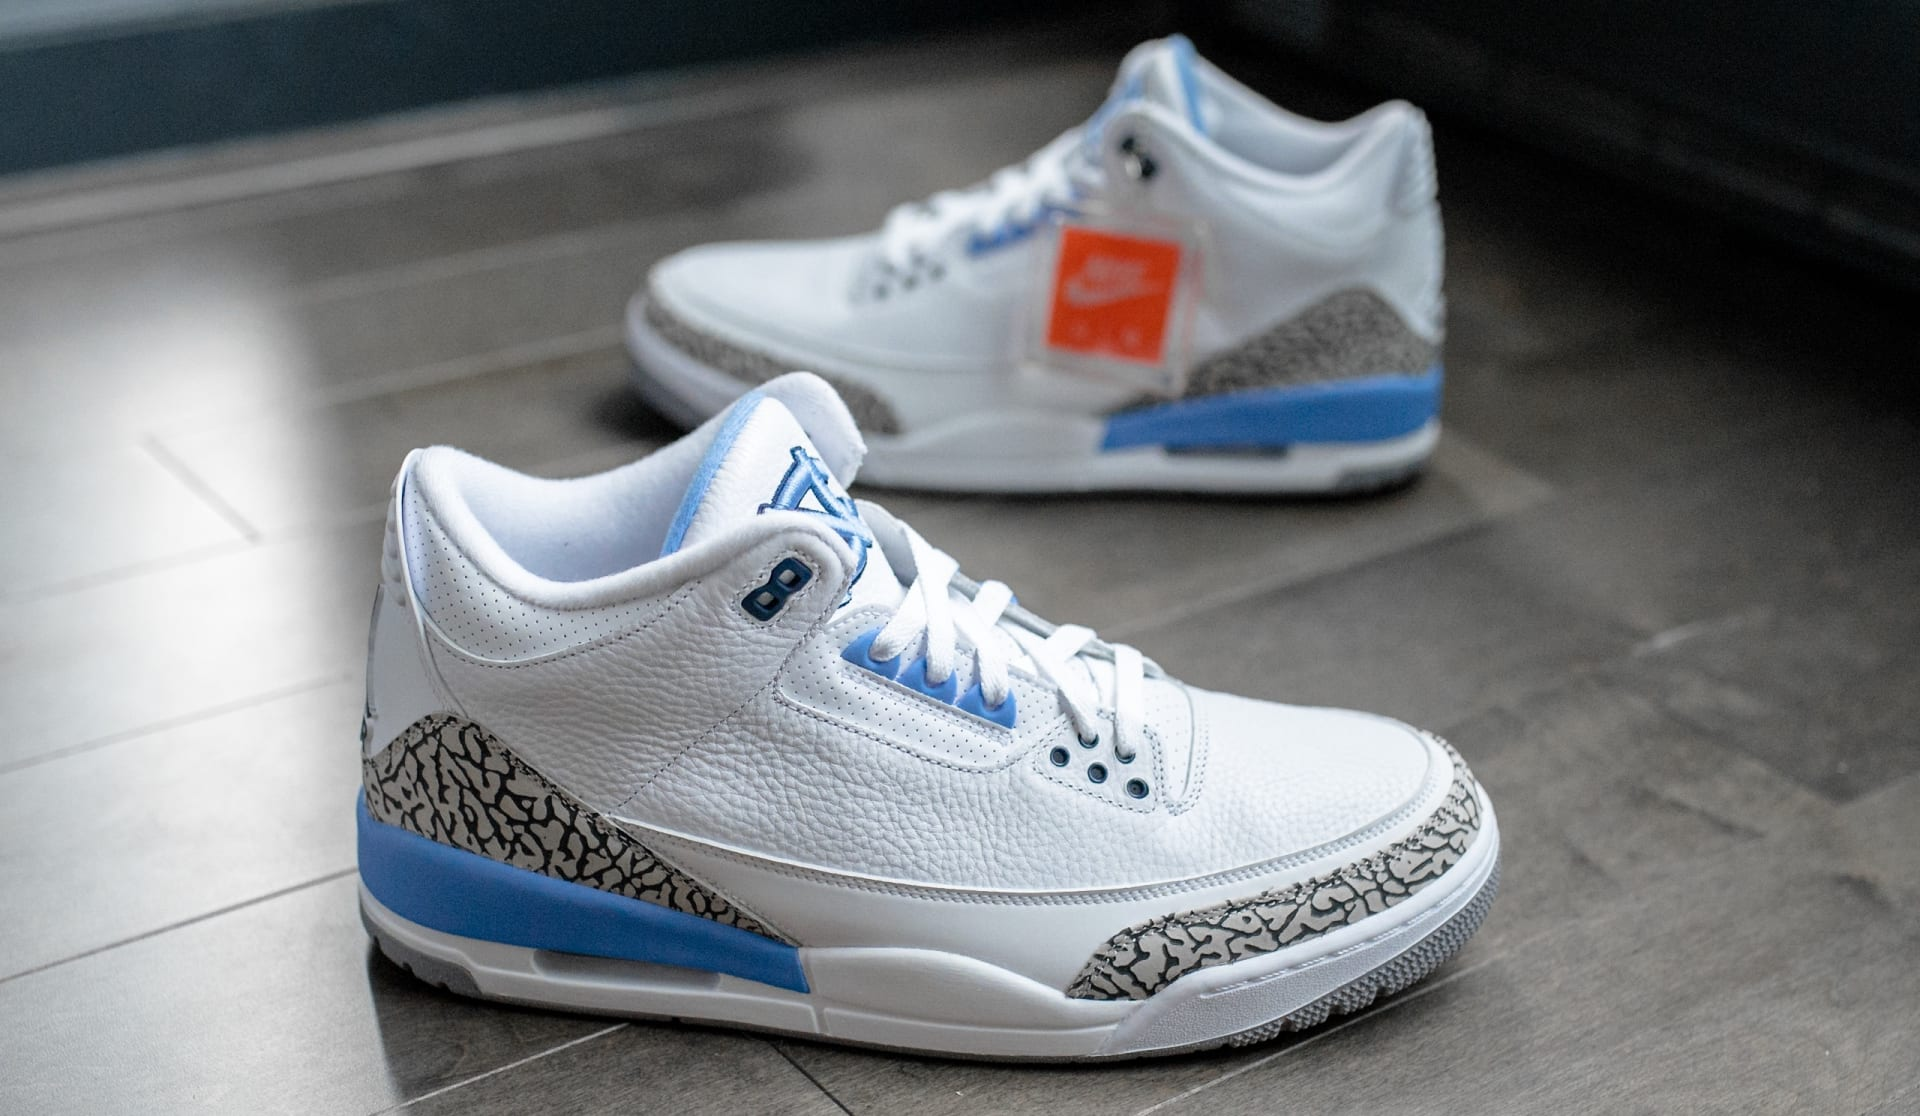 huge selection of cbf2a dad22 5. Air Jordan III Retro UNC PE